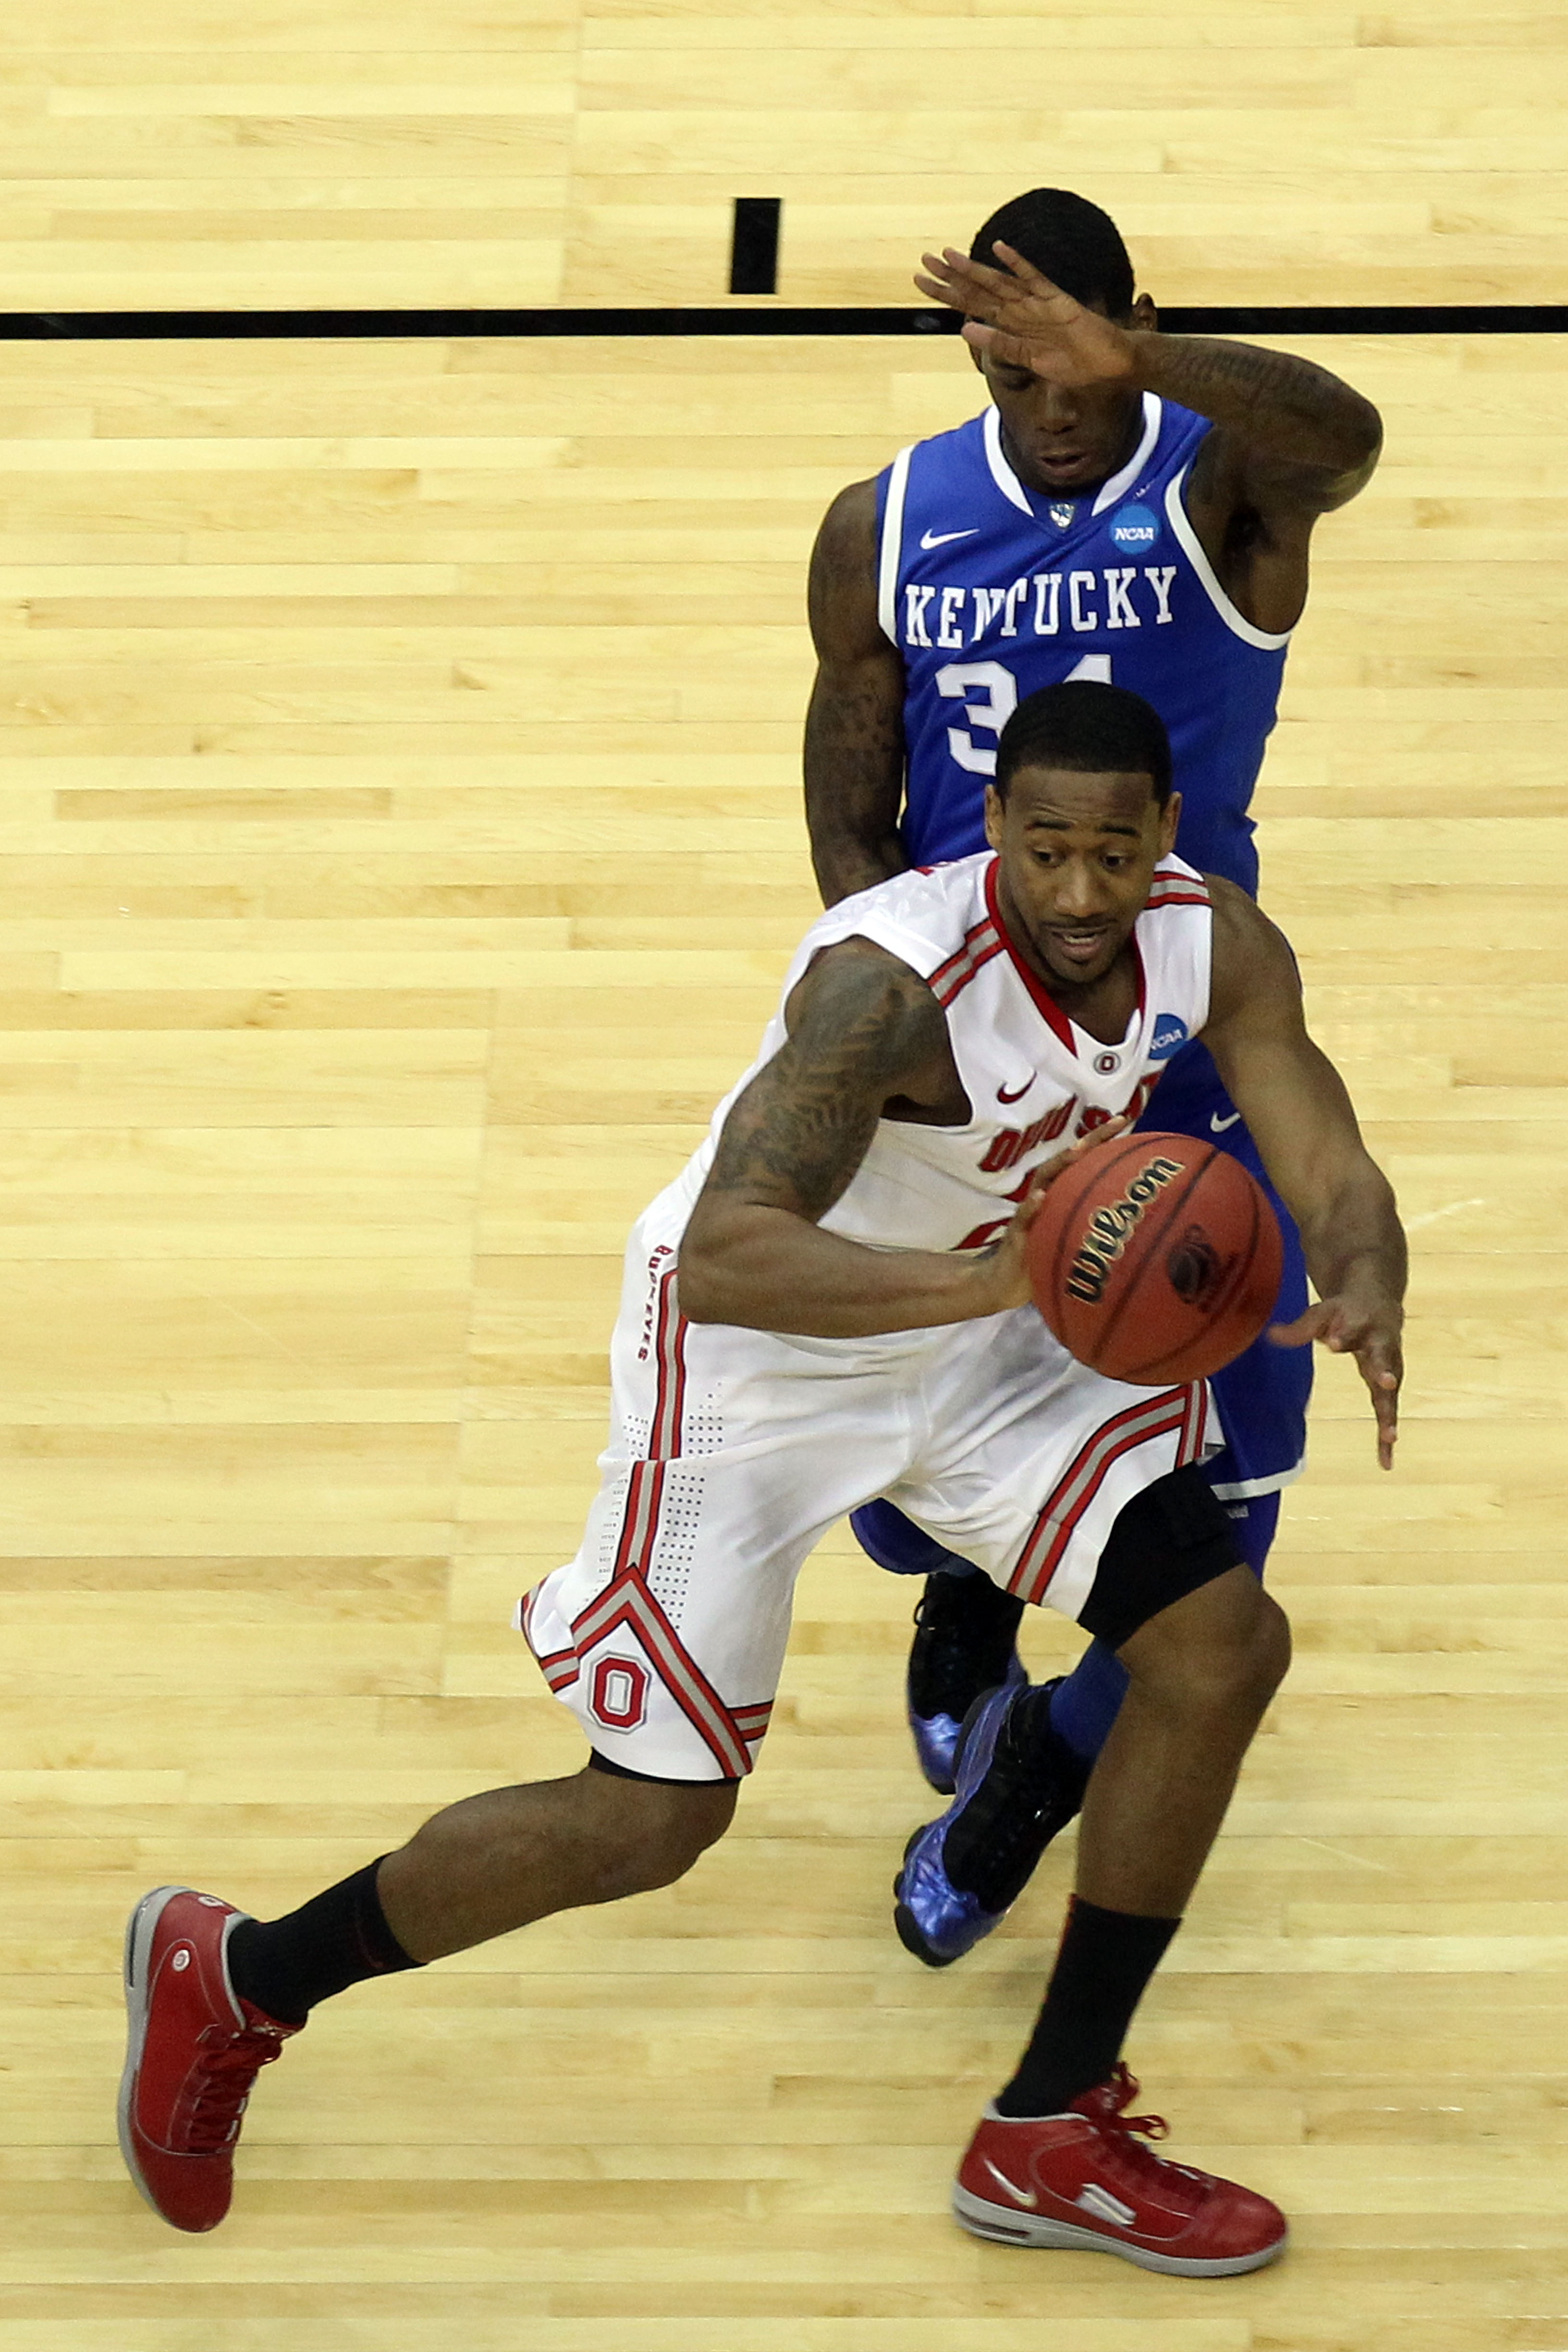 NEWARK, NJ - MARCH 25:  David Lighty #23 of the Ohio State Buckeyes in action against DeAndre Liggins #34 of the Kentucky Wildcats during the east regional semifinal of the 2011 NCAA Men's Basketball Tournament at the Prudential Center on March 25, 2011 i